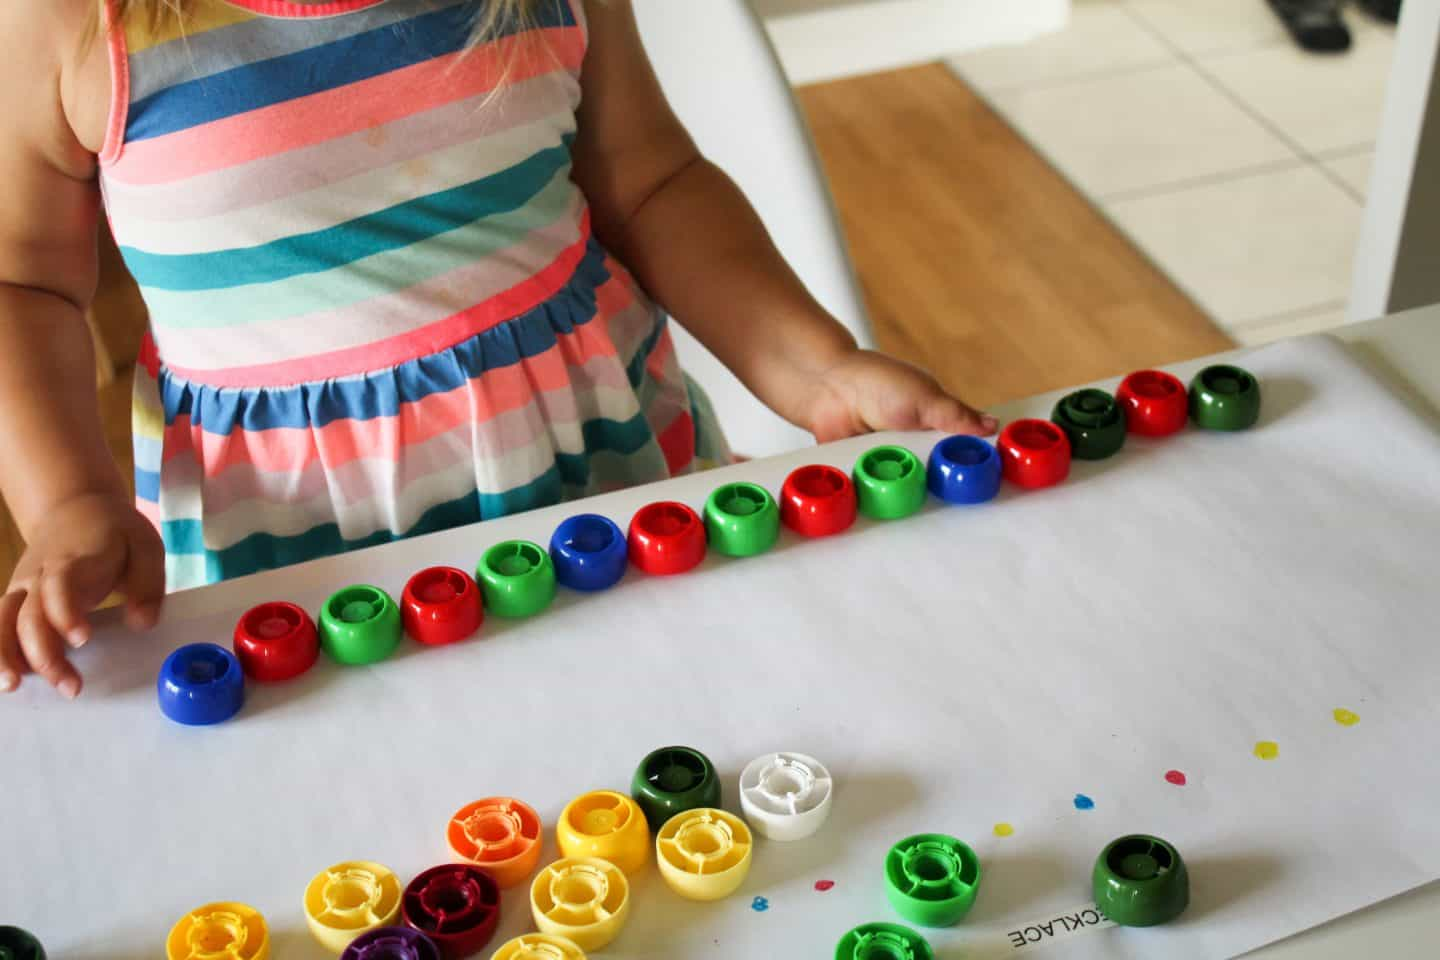 A fun pattern activity for preschoolers using baby food pouch caps and making a necklace